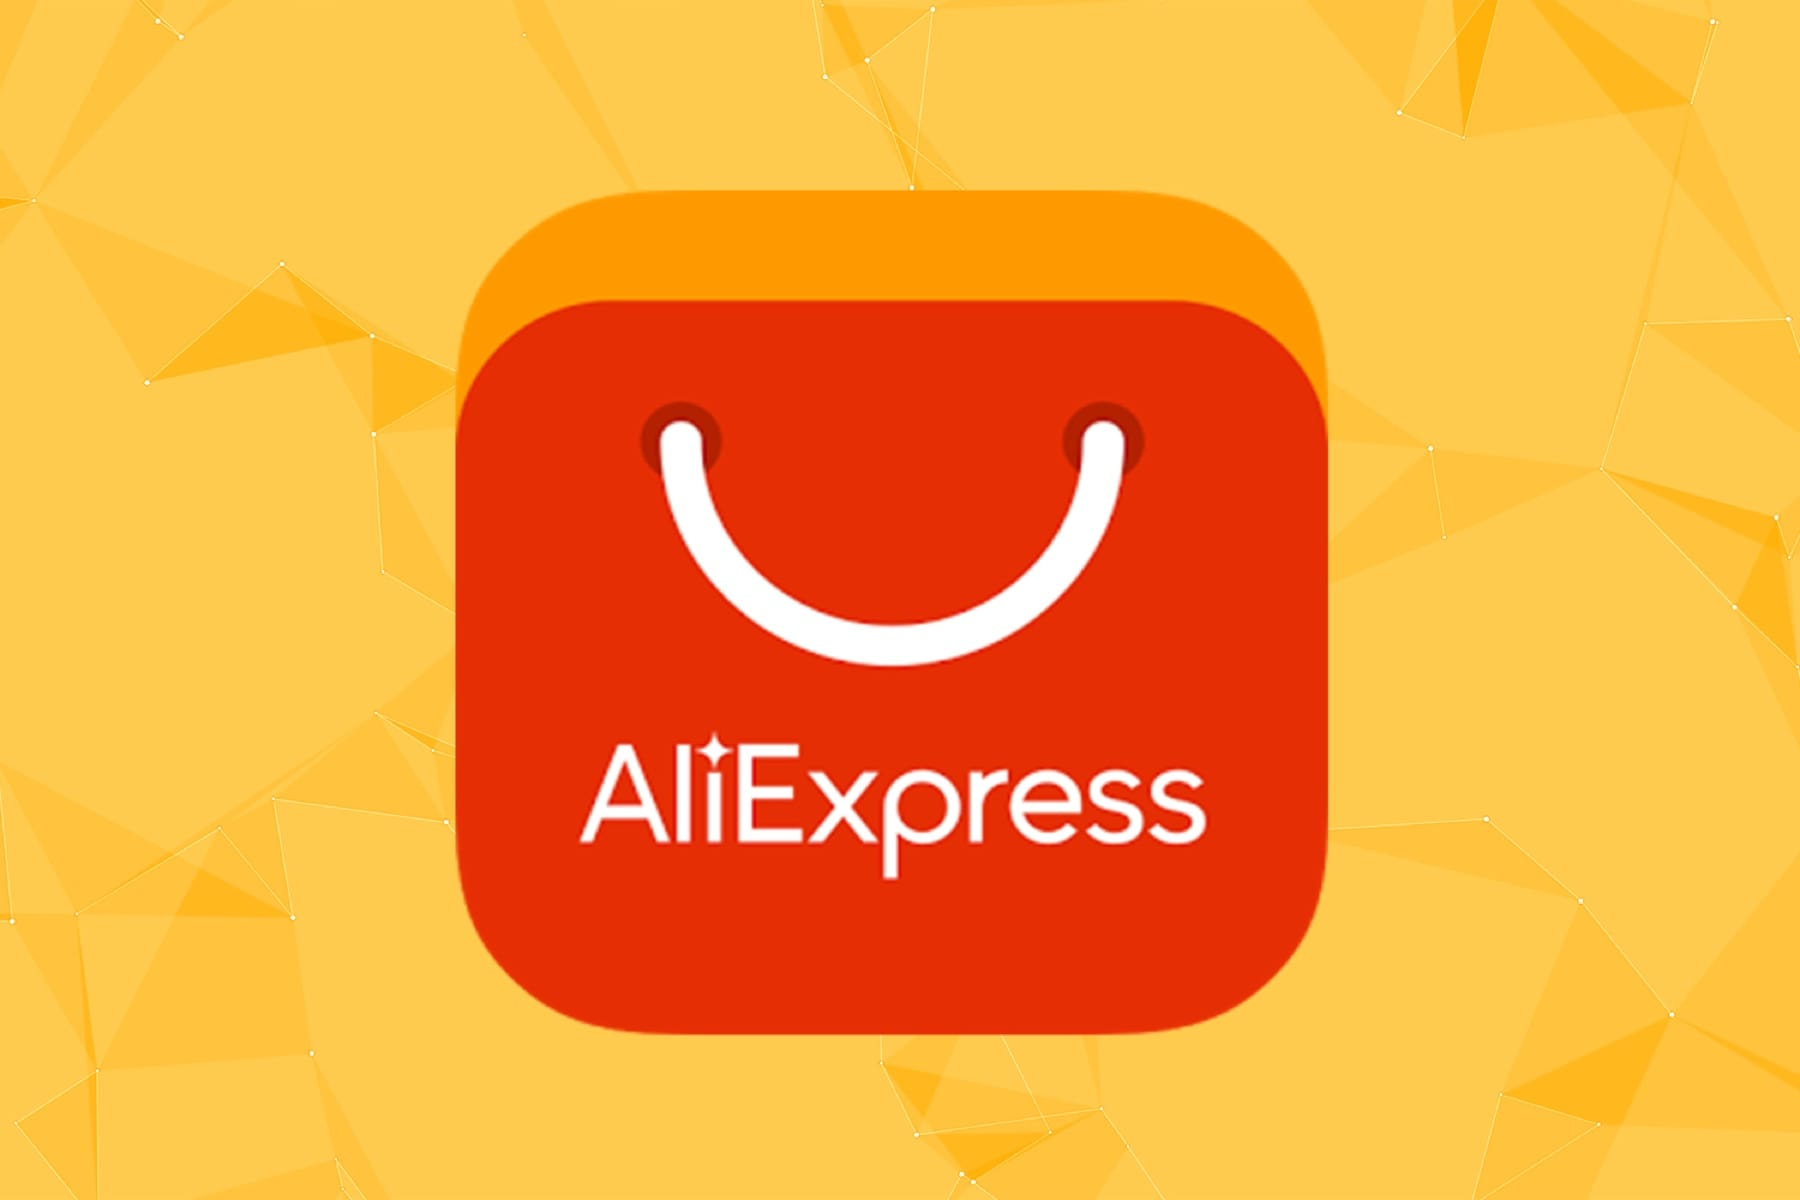 What Is Aliexpress Top Brands?